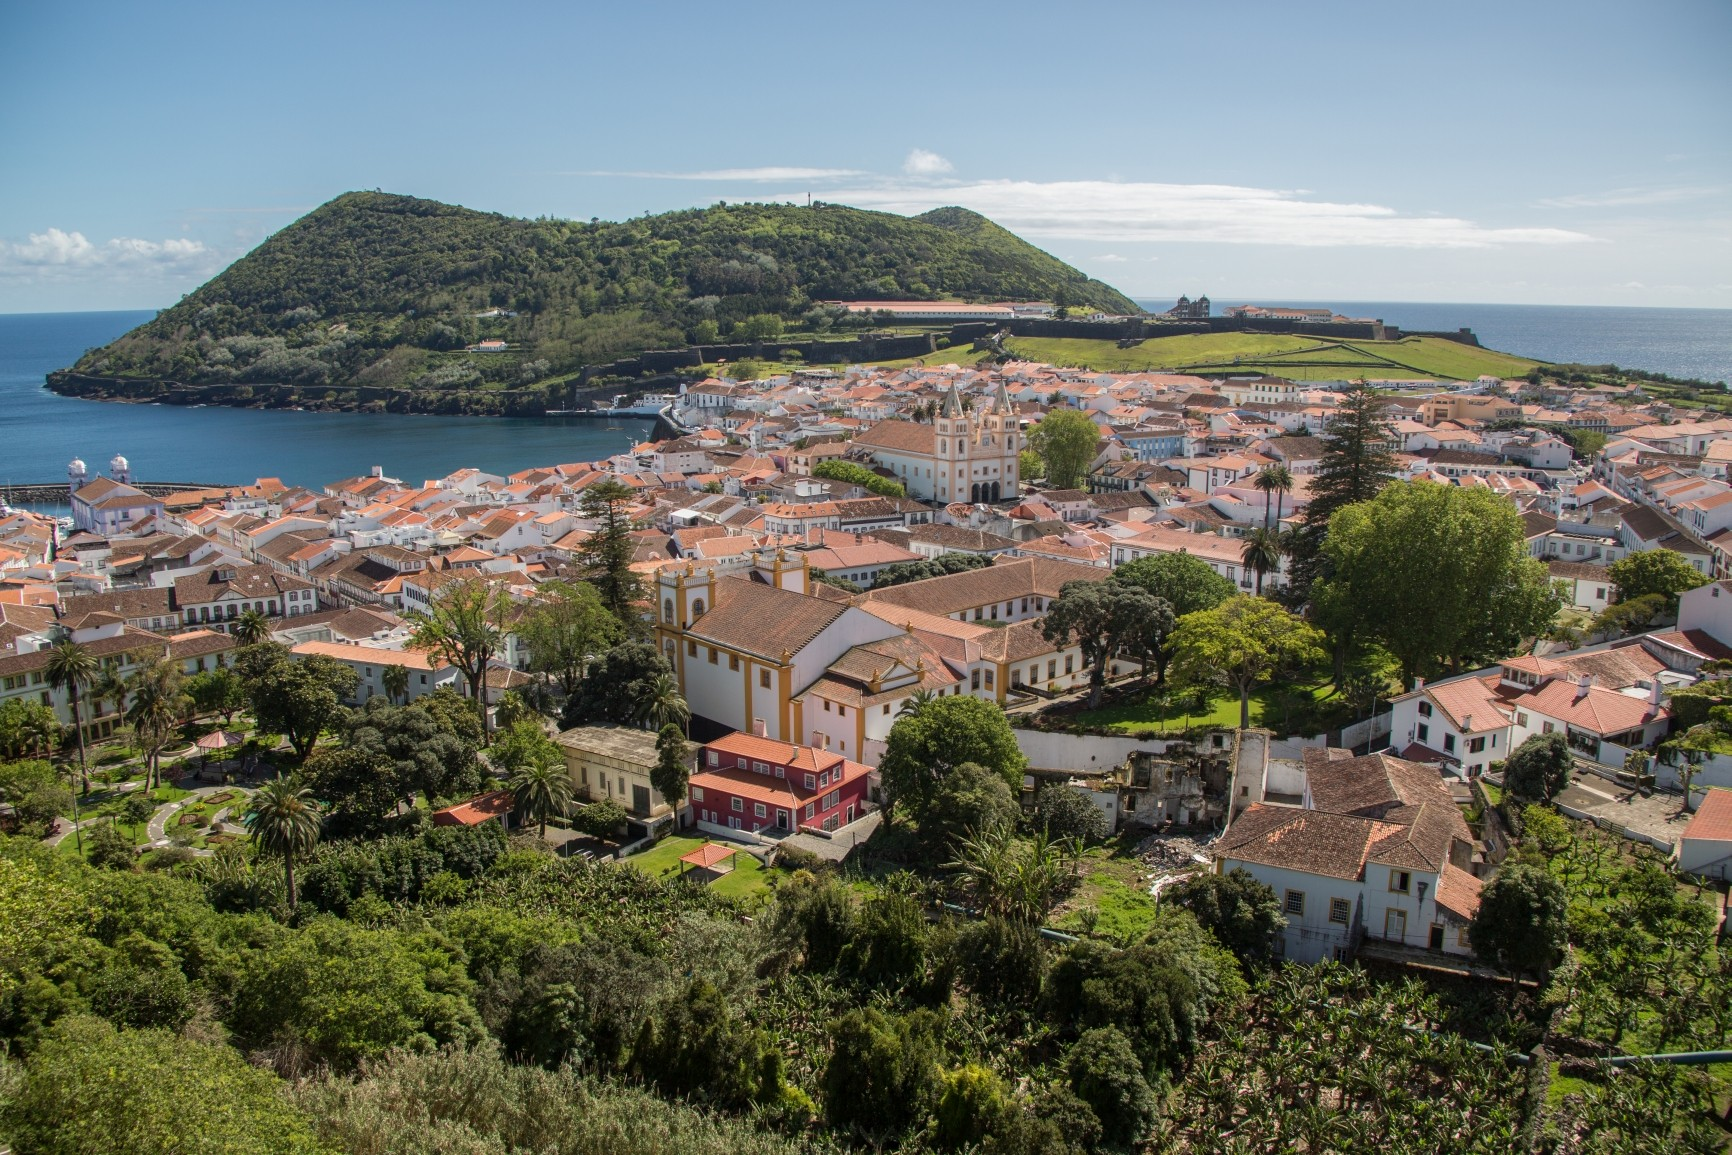 Terceira - Angra do Heroismo